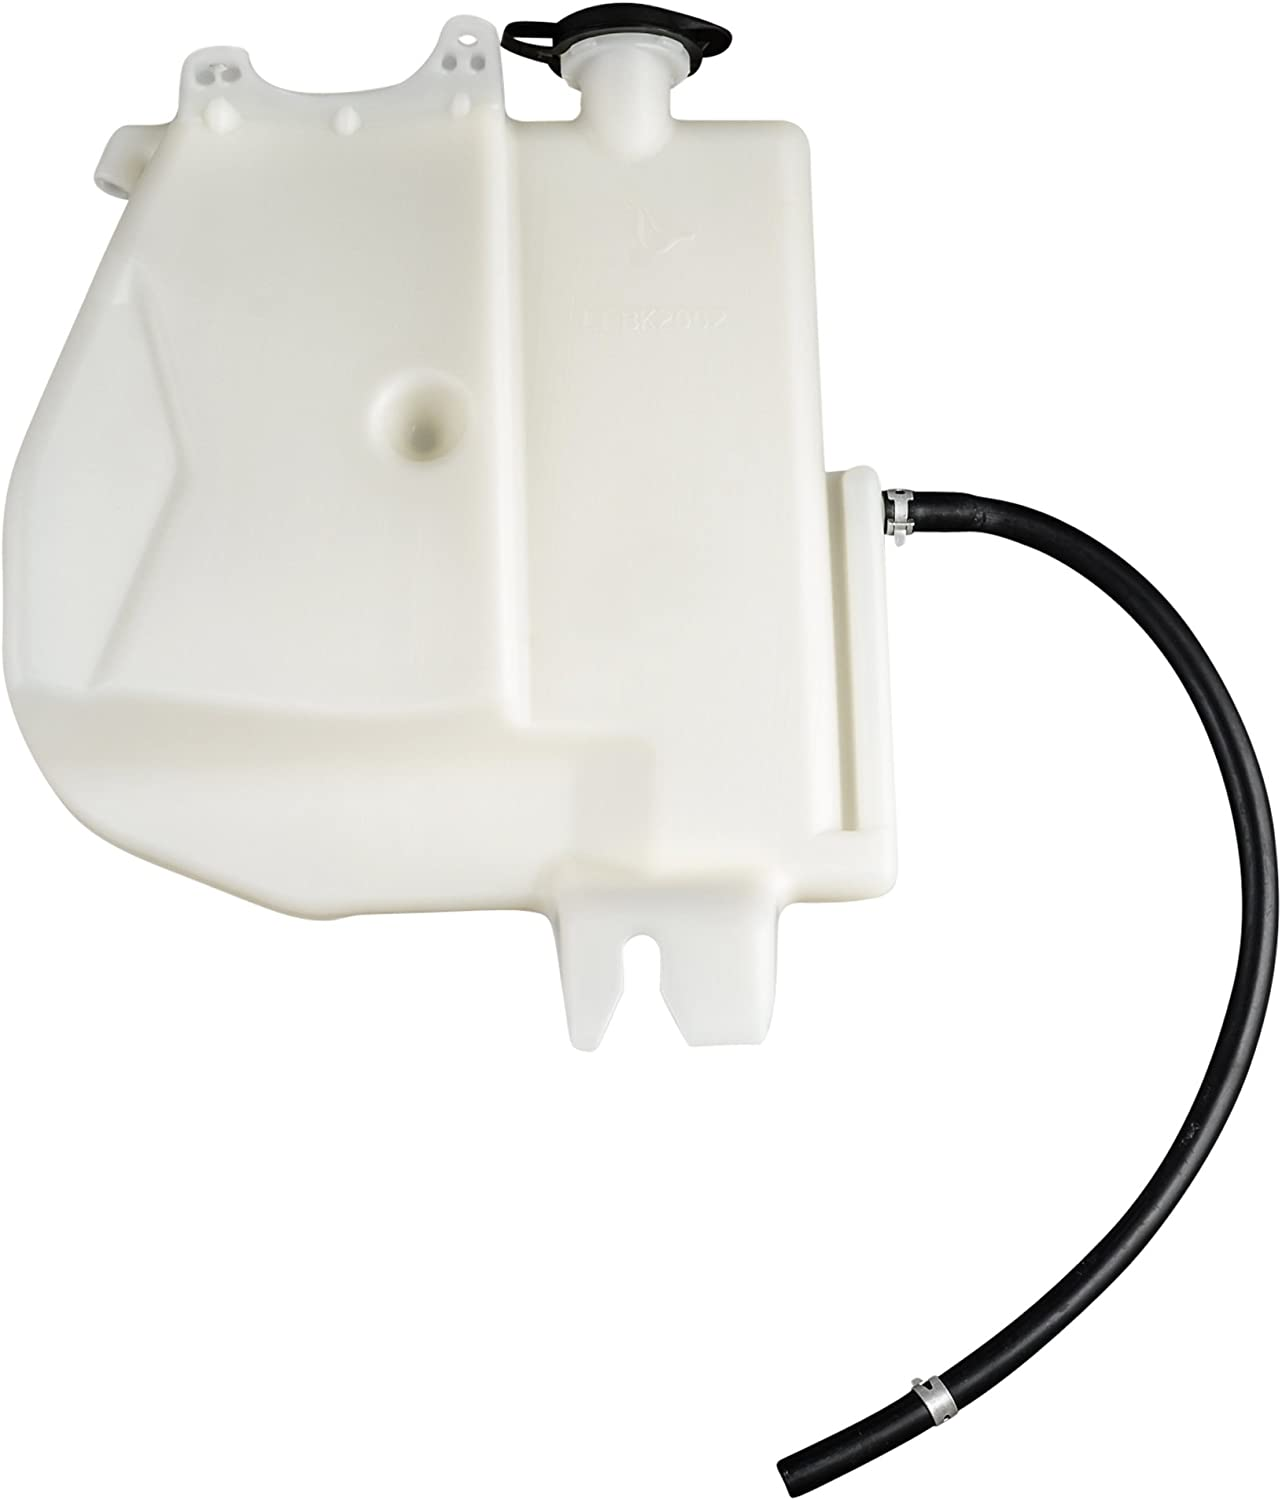 Replacement Coolant Reservoir For Chevy Chevrolet Impala Monte Carlo